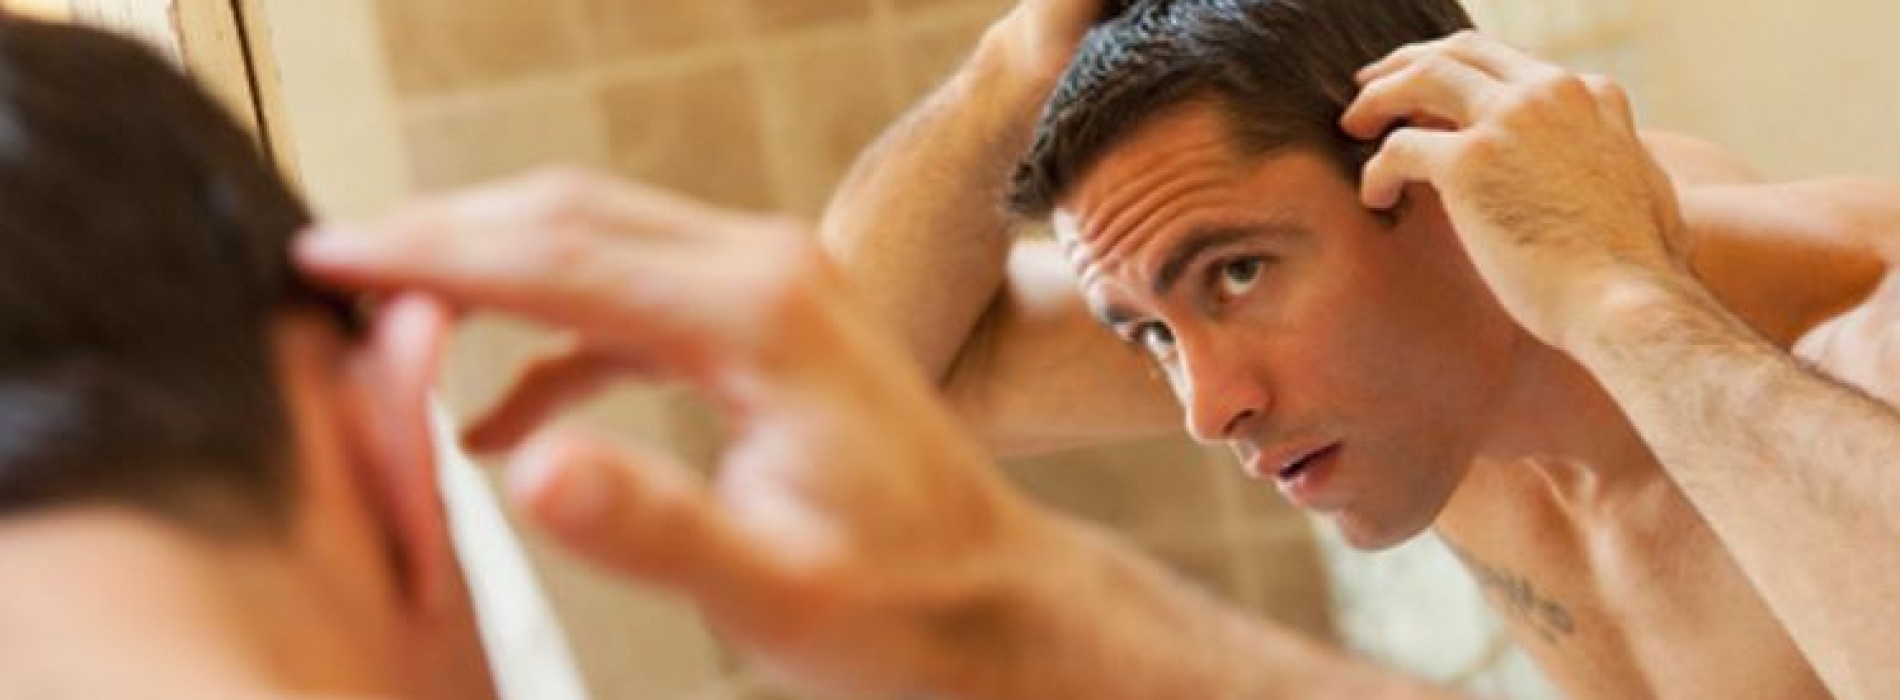 Effective remedies for baldness through reliable and trusted methods